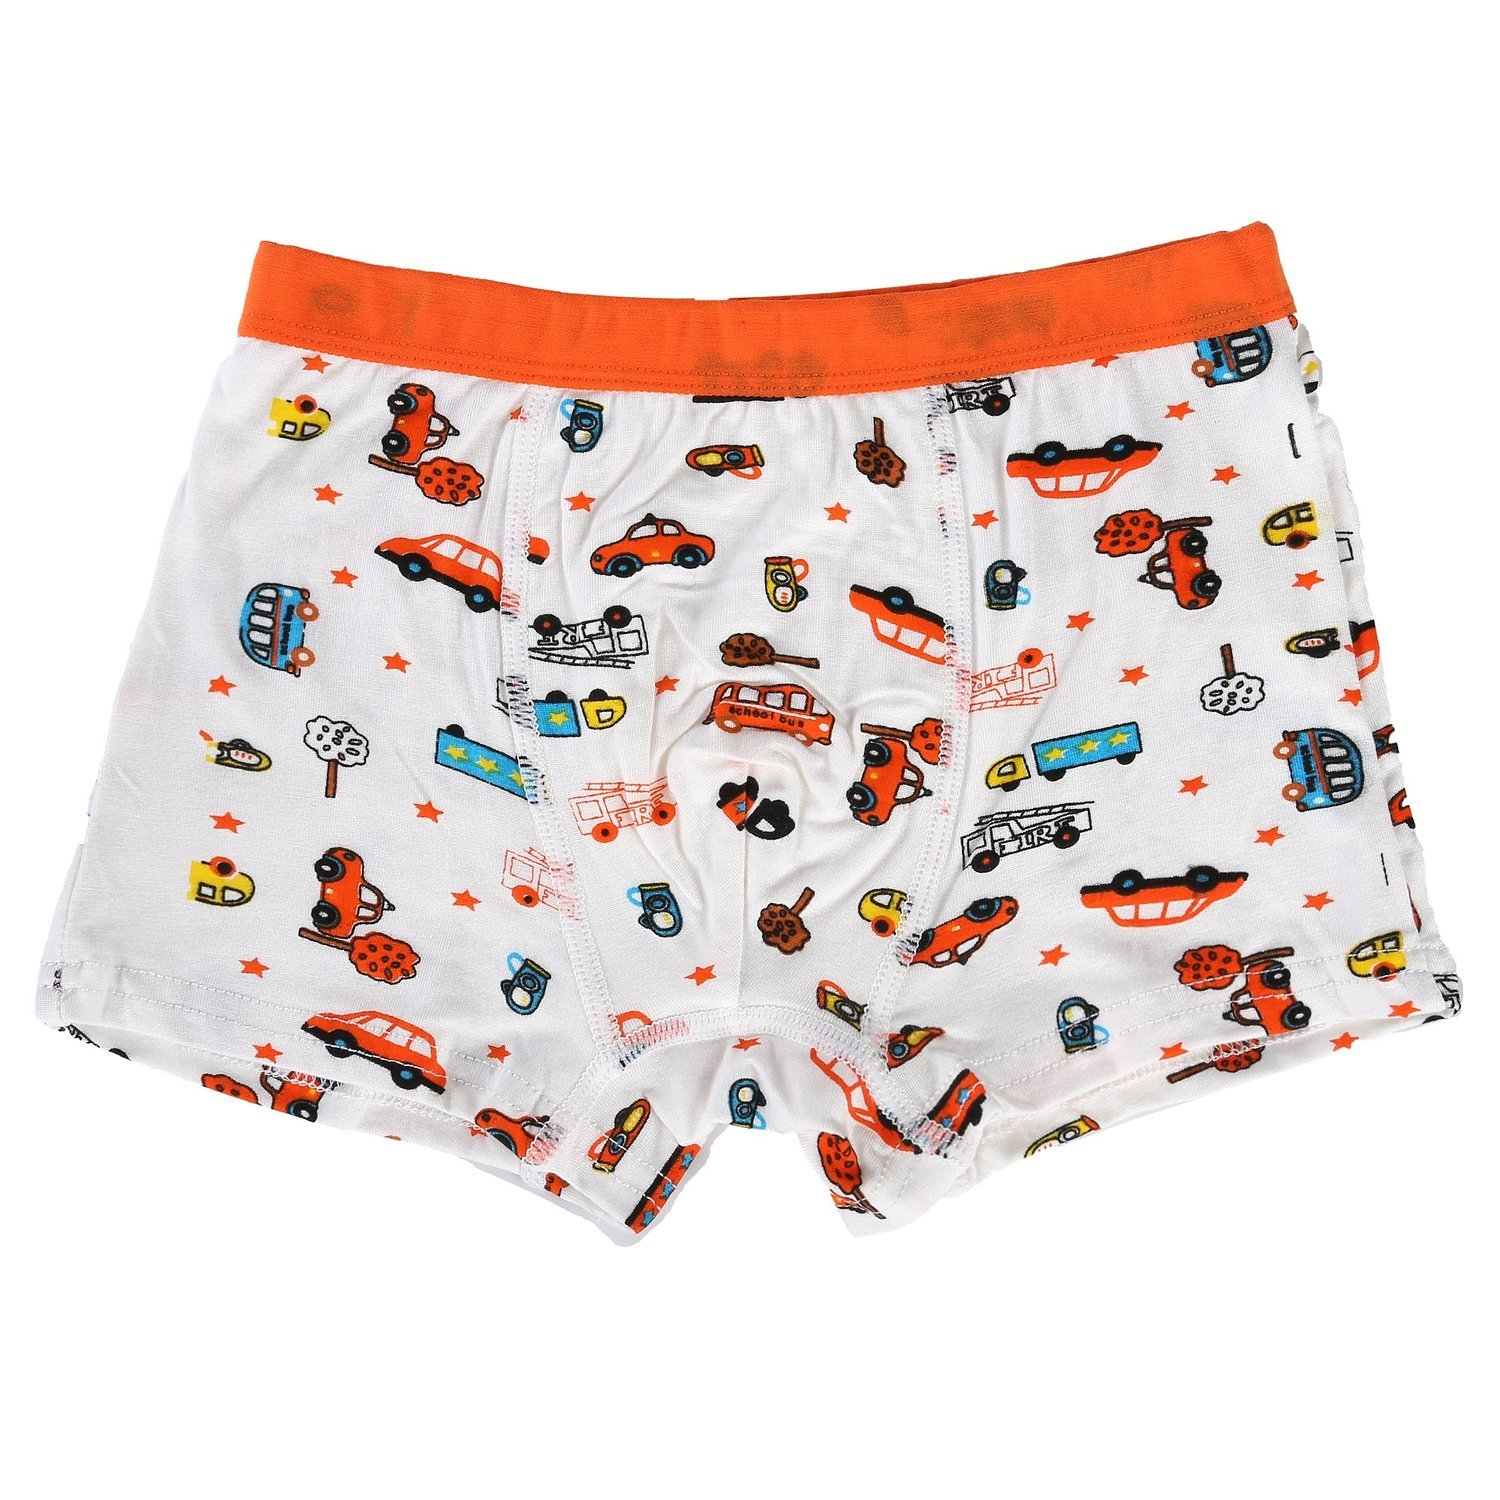 Bala Bala Boy's Boxer Brief Multicolor Underwear (Pack Of 5) (XL/Car Underwear, (Pack Of 5)/Car Underwear) by Bala Bala (Image #5)